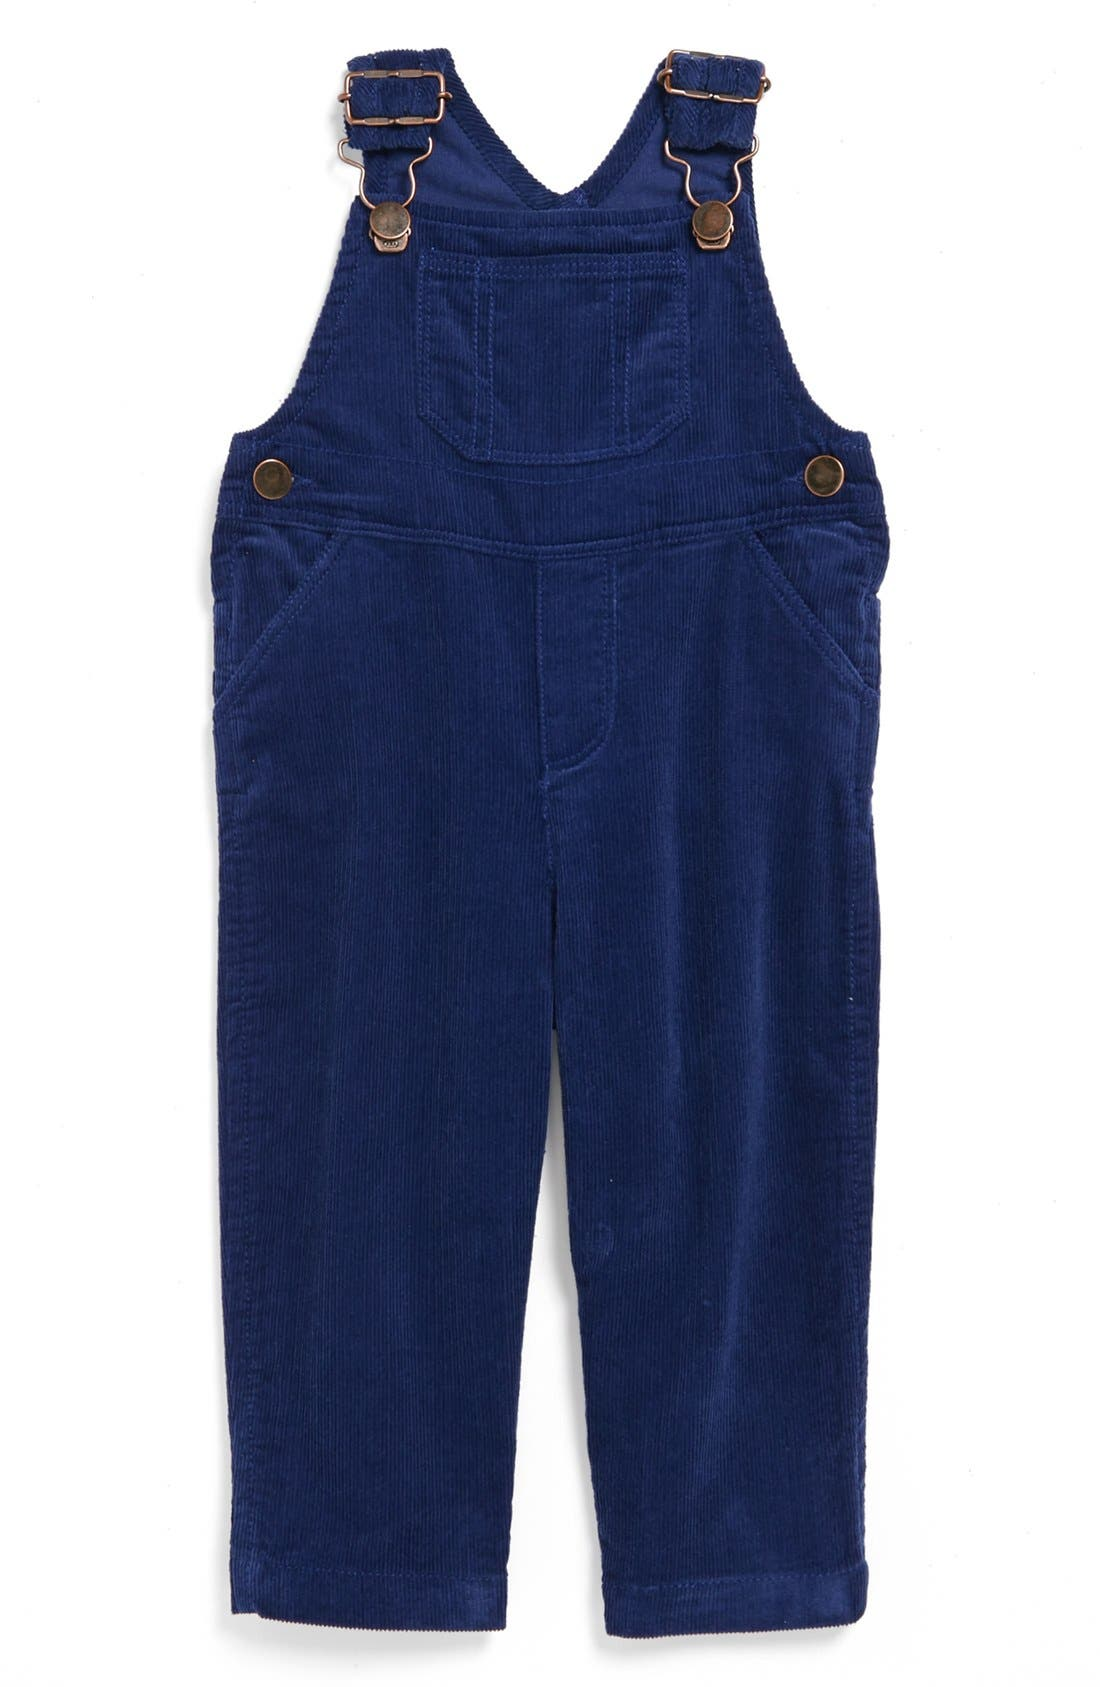 Alternate Image 1 Selected - Nordstrom Baby Corduroy Overalls (Baby Boys)